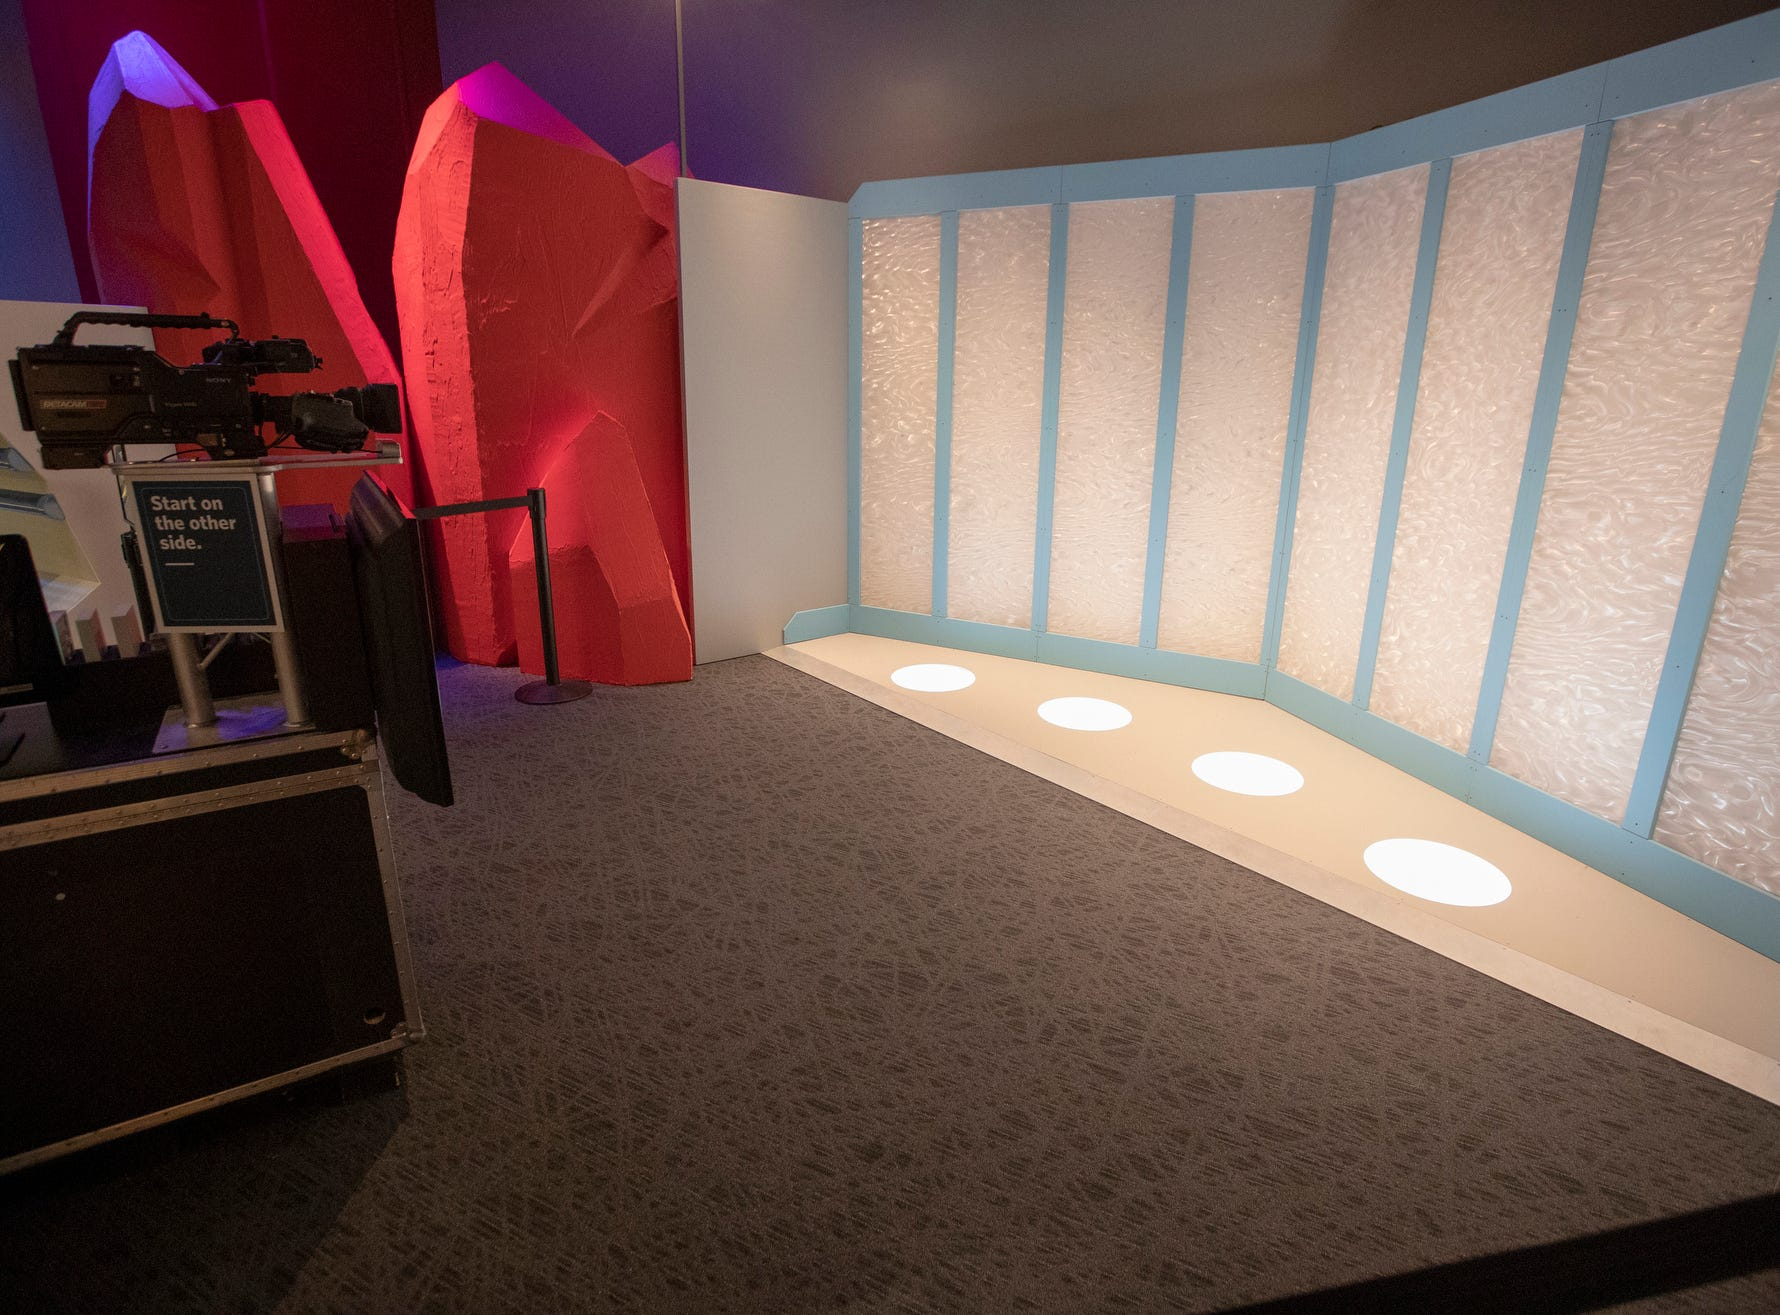 """A set of Star Trek transporter pads is seen at The Children's Museum of Indianapolis, Wednesday, Jan. 23, 2019. The """"Star Trek: Exploring New Worlds"""" exhibit is made up of set pieces, ship models and outfits used during various Star Trek shows and movies and is on display at the museum from Feb. 2 through April 7, 2019."""